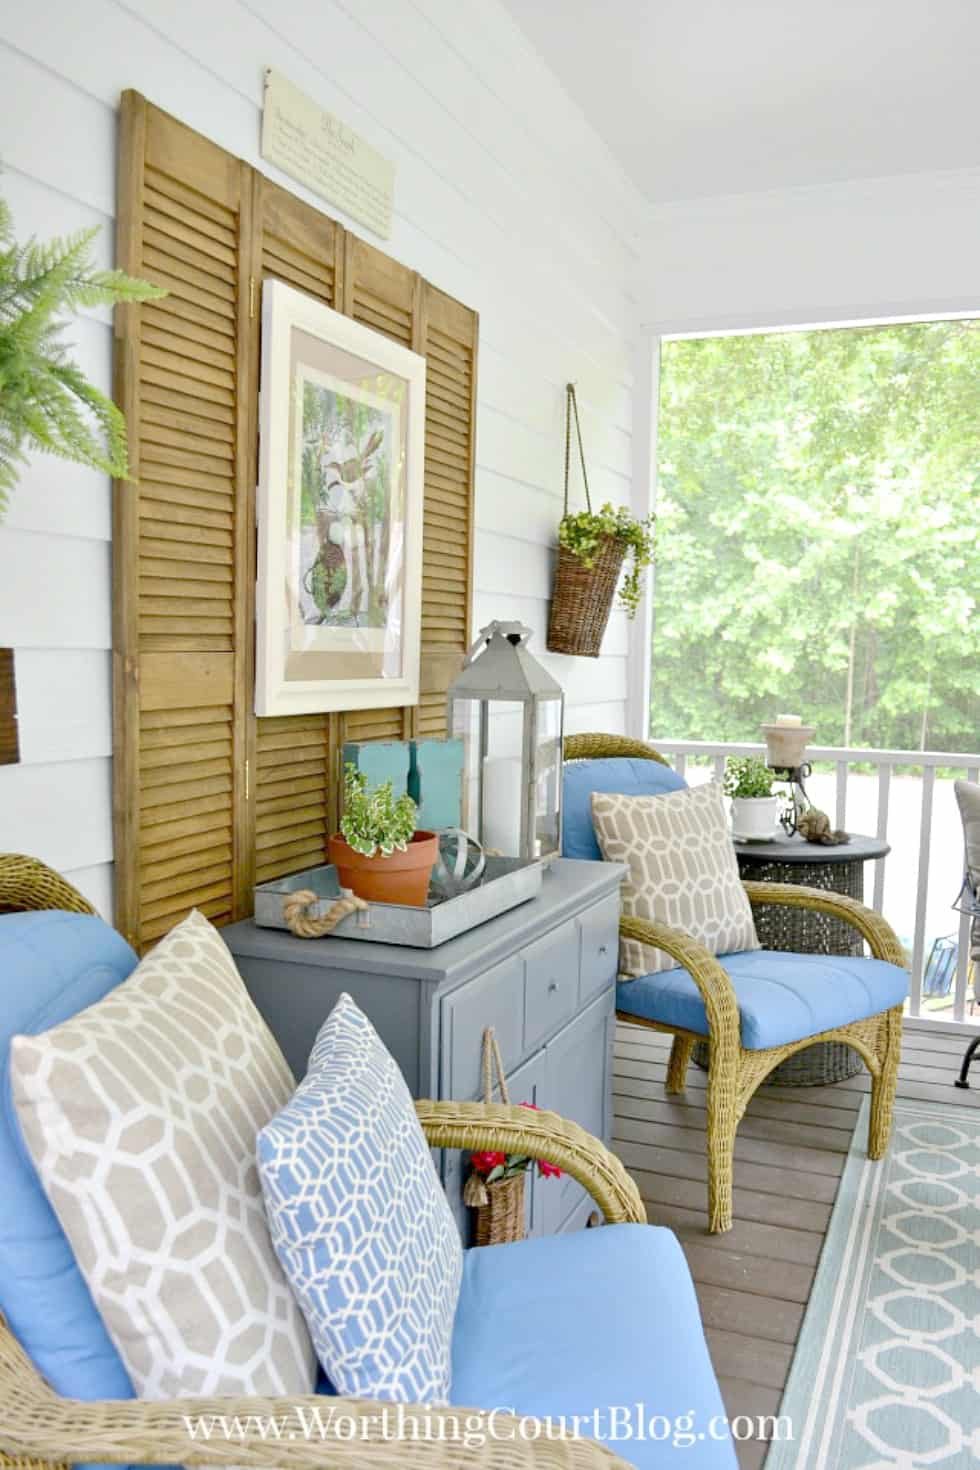 Southern Screen Porch Reveal - Before and After